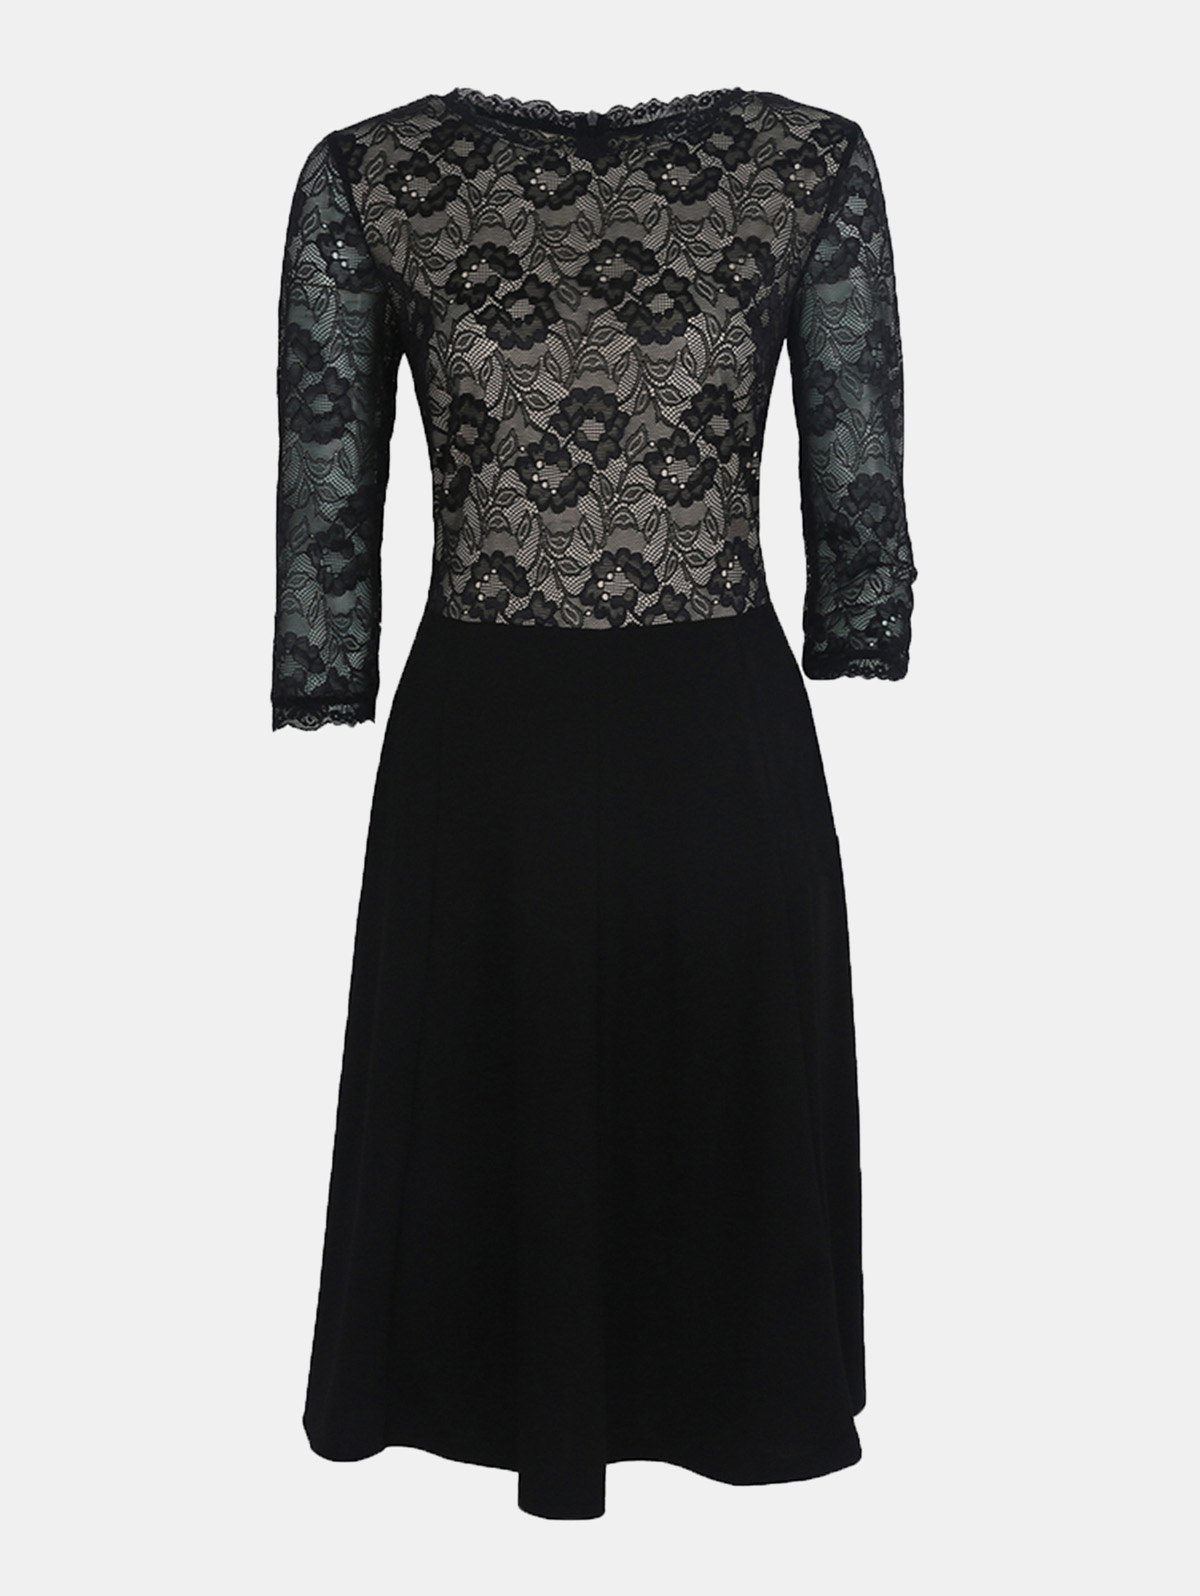 Lace Patchwork Round Collar 7 Point Sleeve A-line Dress - BLACK 2XL